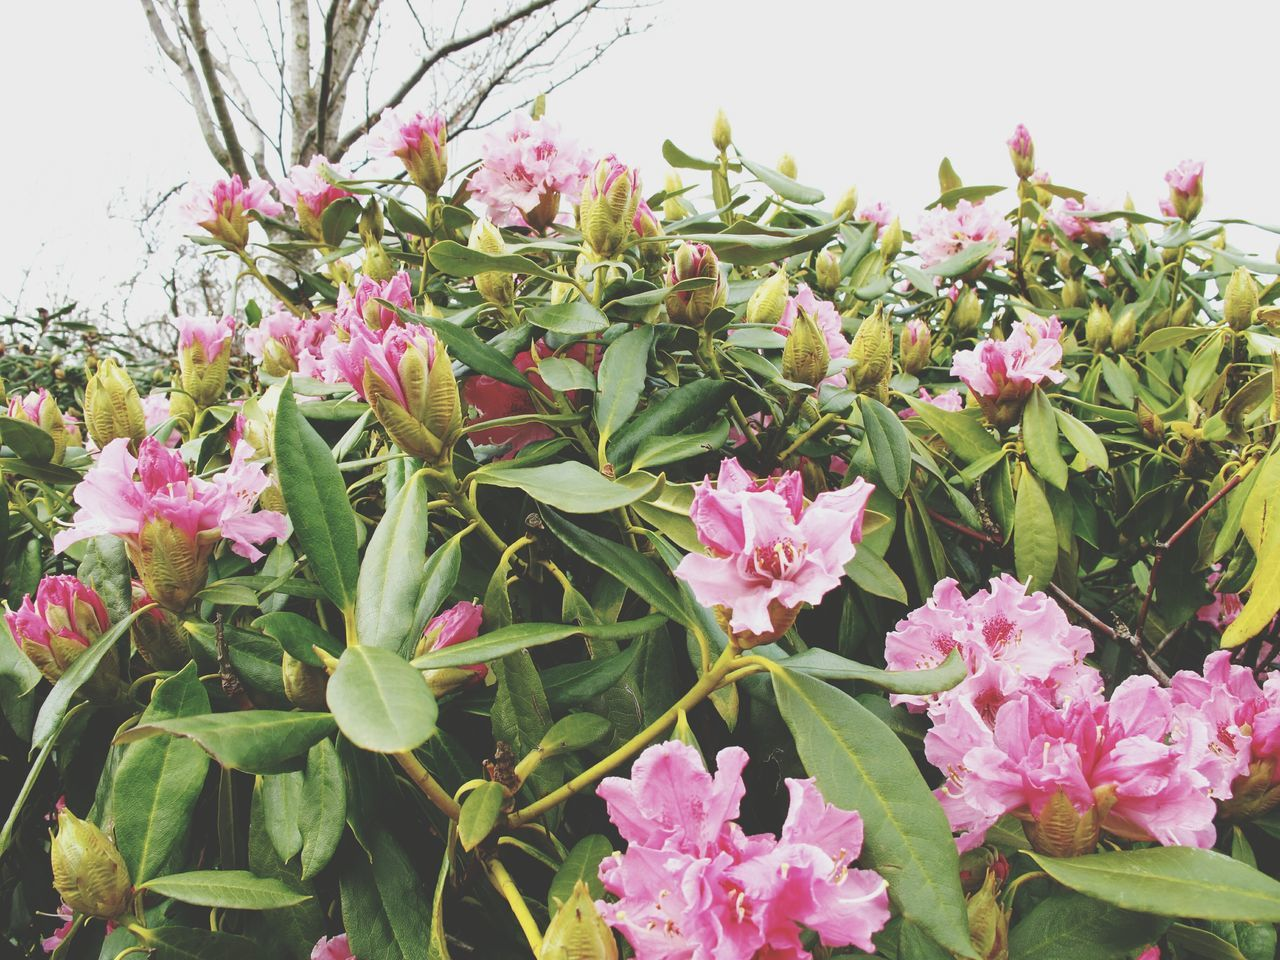 Spring Springtime Pink Pink Flowers Flowers Flowerporn Flower Bush Bushes Rhododendron Rhododendrons Garden Showcase April Haworth Check This Out Floral Florals Flower Power Enjoying Life Trees Nature Landscape Landscape_Collection Landscapes F1